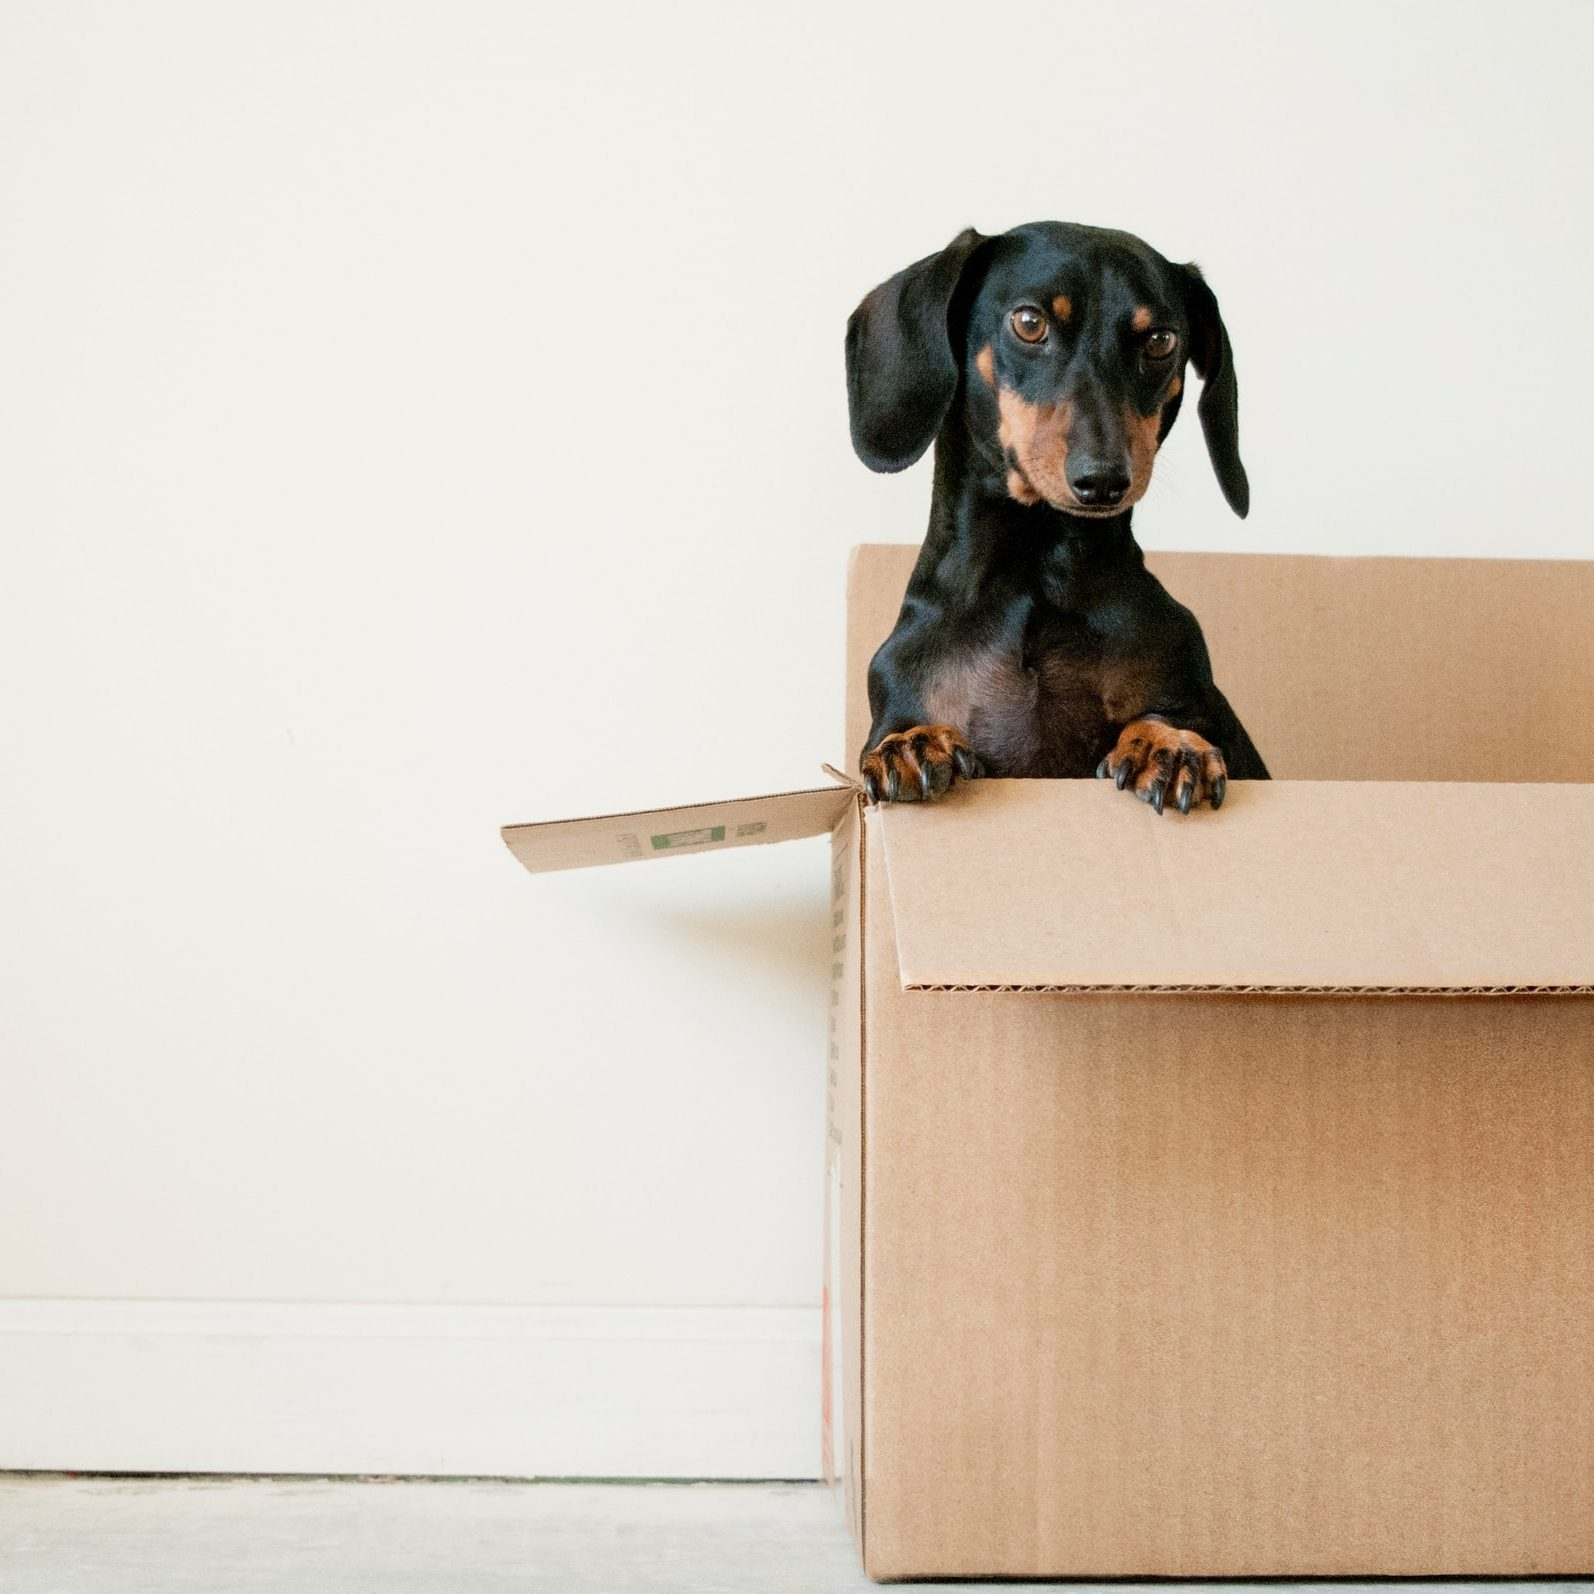 Puppy popping out of box